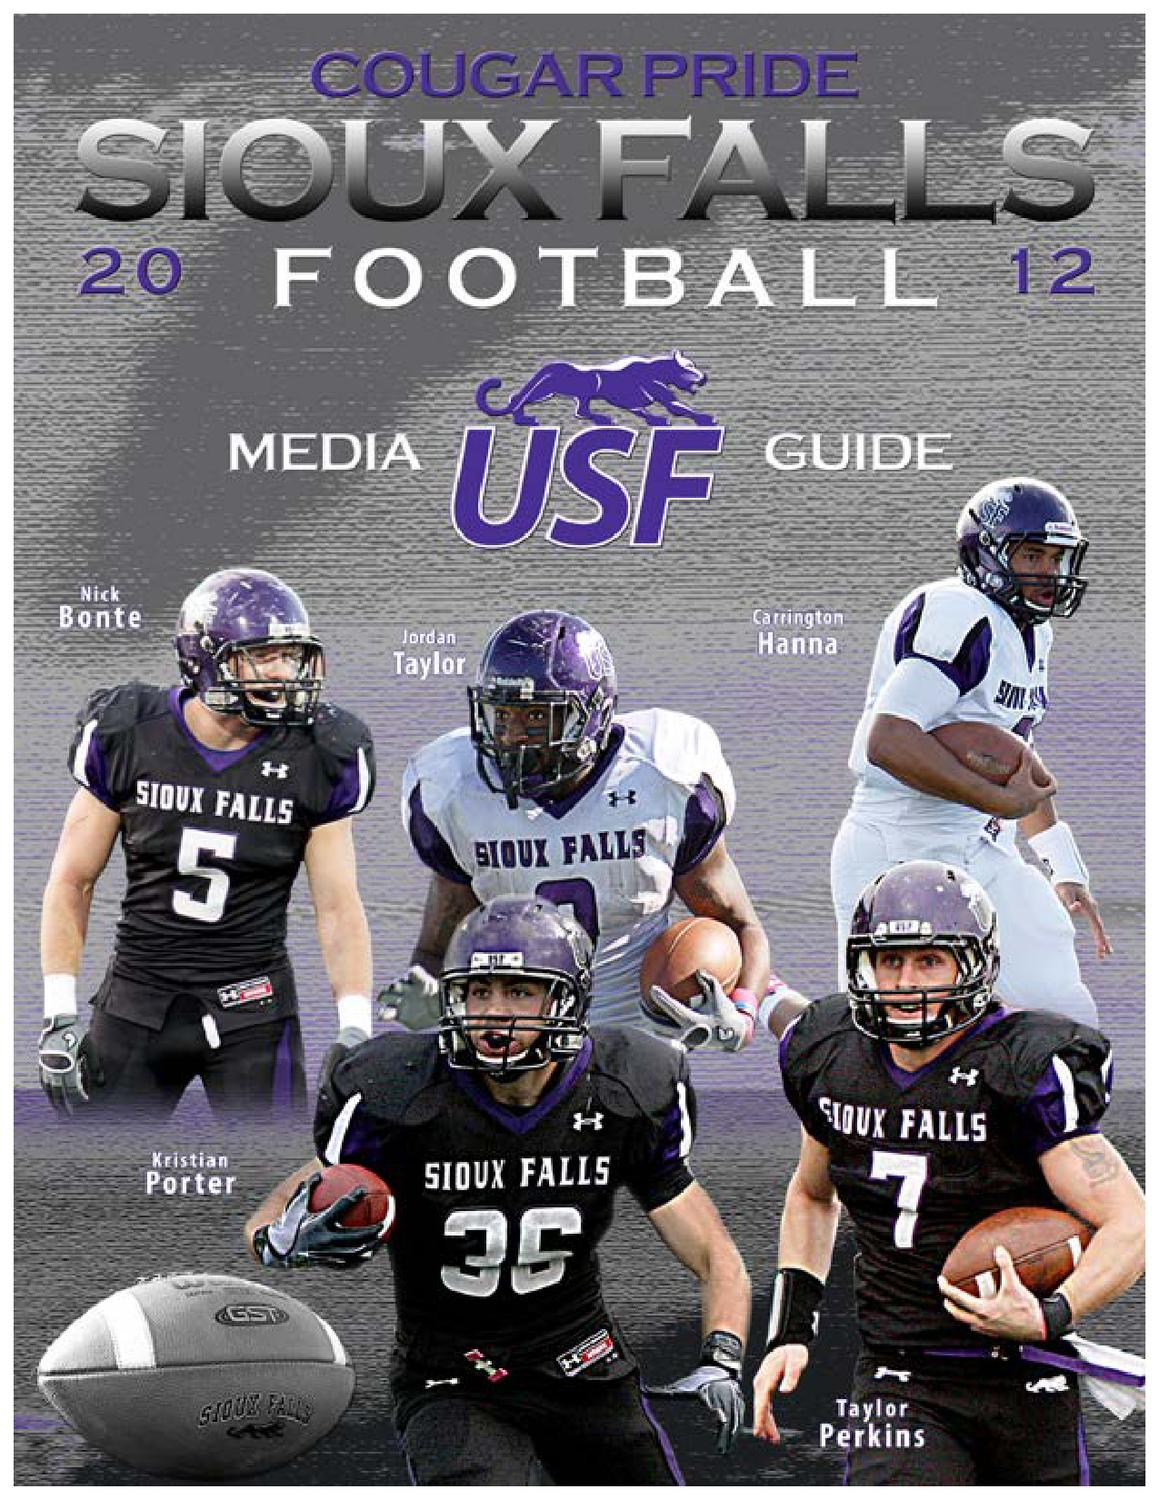 2012 Sioux Falls Football Guide By Usf Athletics Issuu